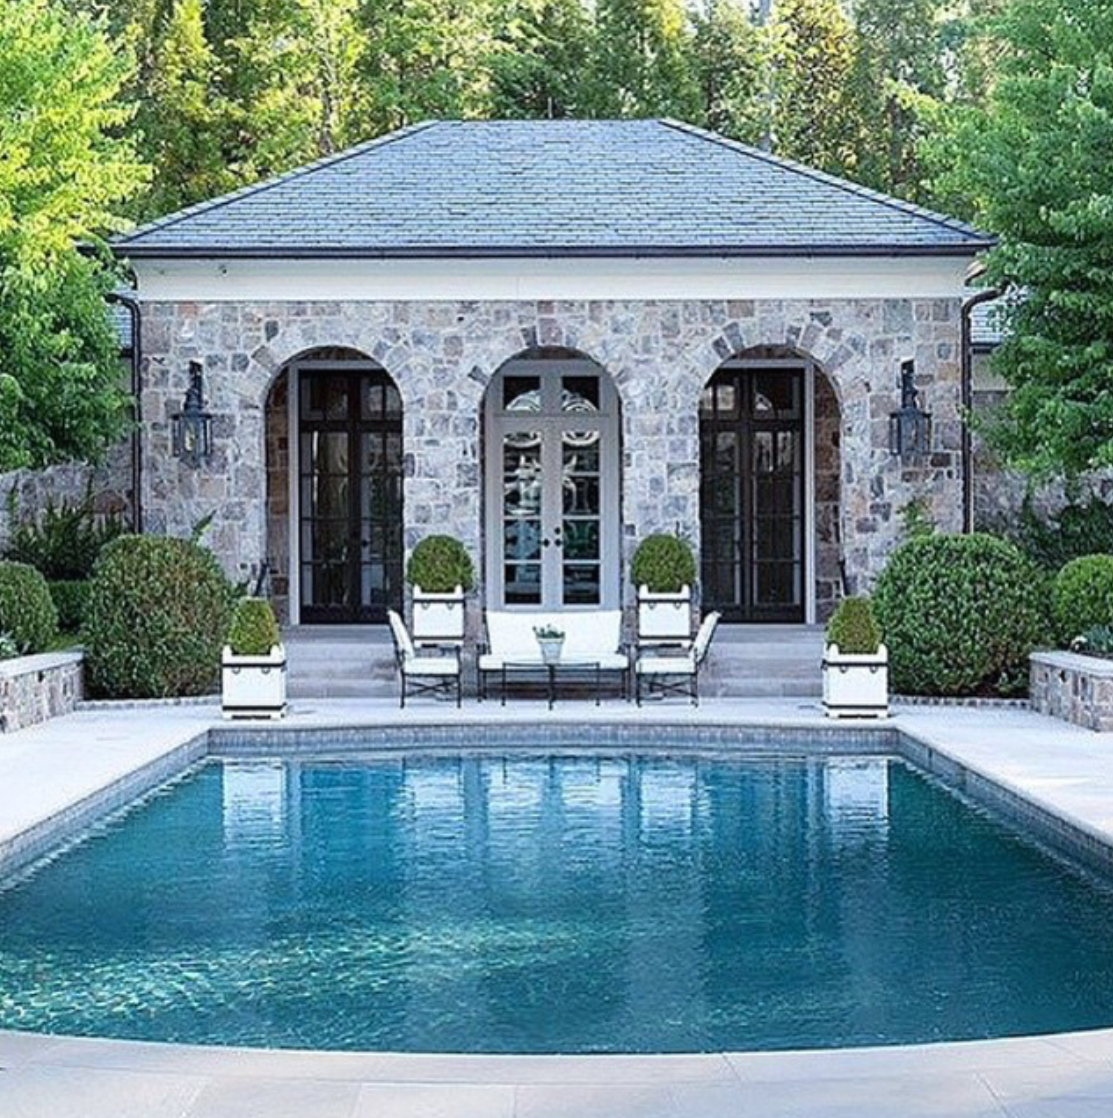 Luxury House Plans With Pools: Robyn Catinella